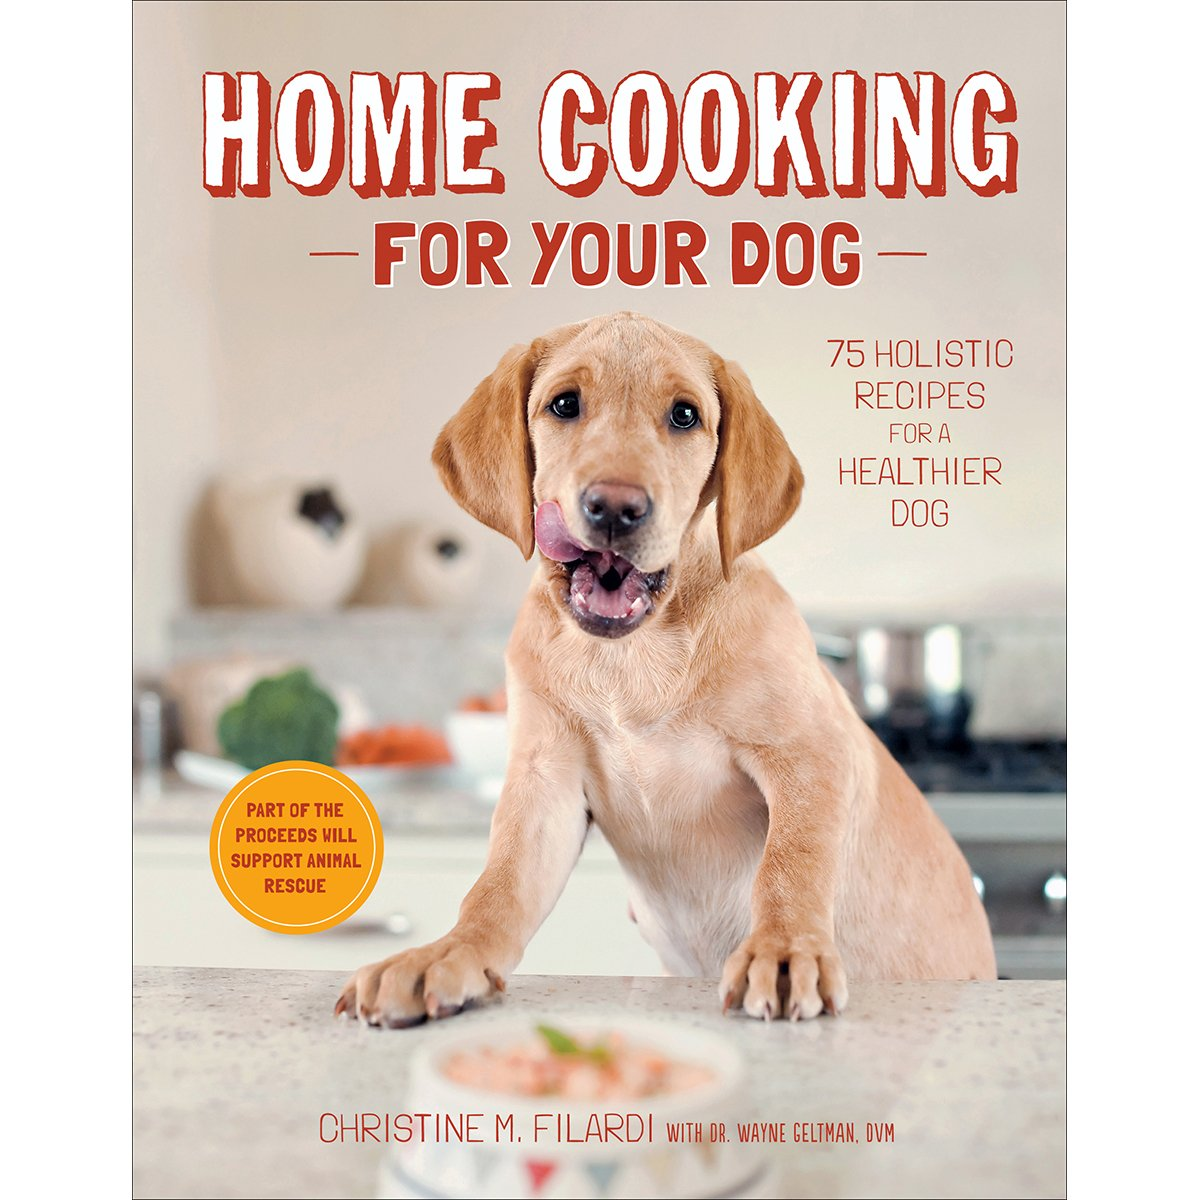 Home cooking for your dog 75 holistic recipes for a healthier dog home cooking for your dog 75 holistic recipes for a healthier dog christine filardi 0884527586724 amazon books forumfinder Choice Image